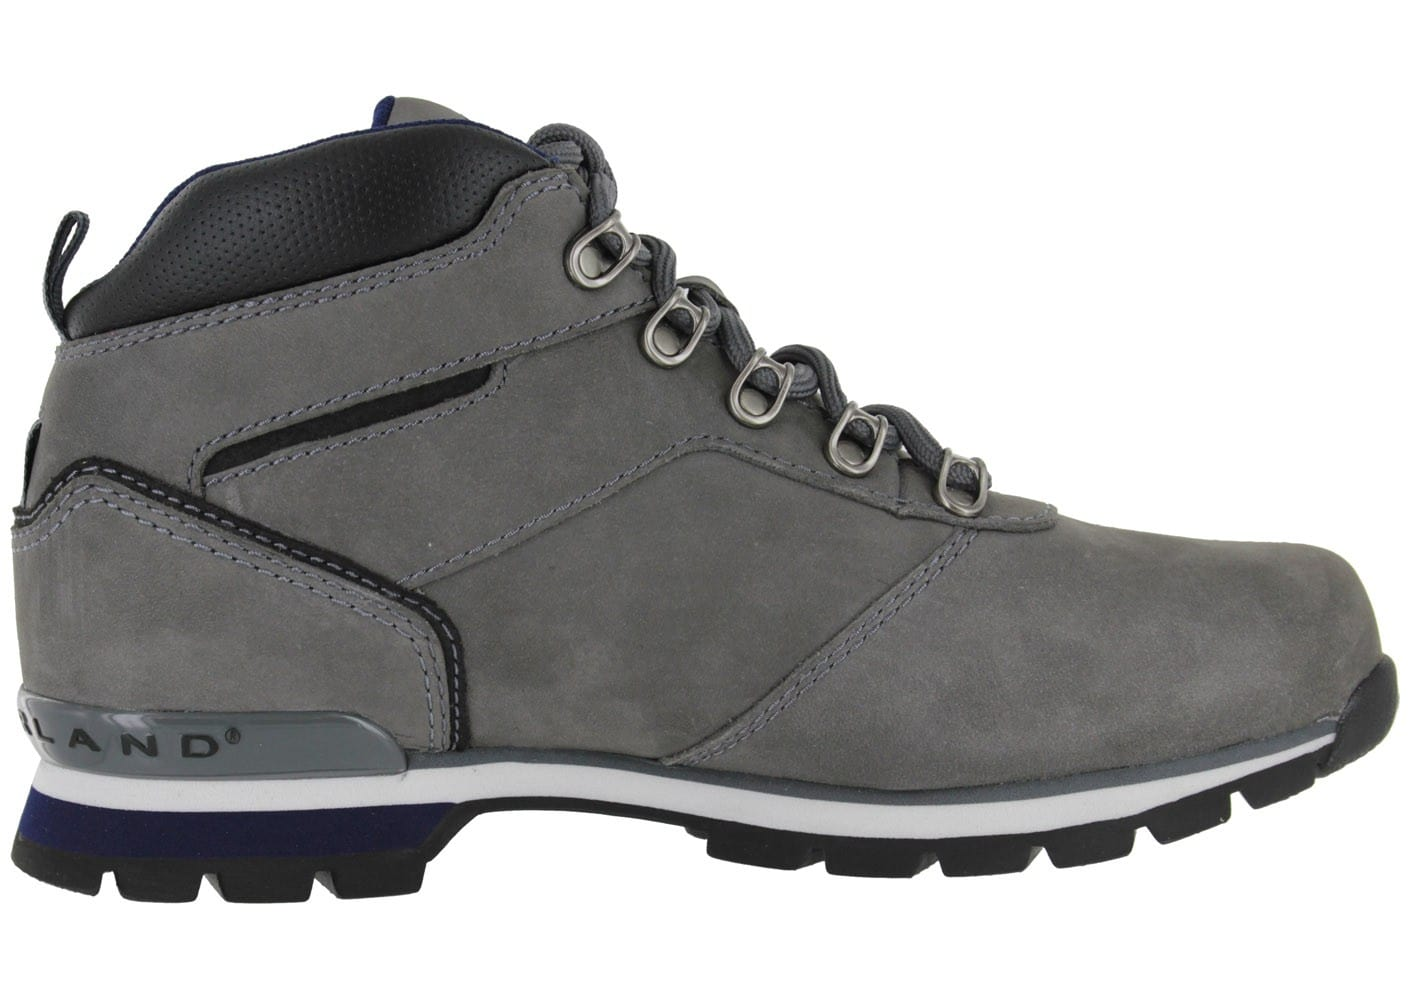 Chaussures timberland grise homme - Timberland grise homme ...